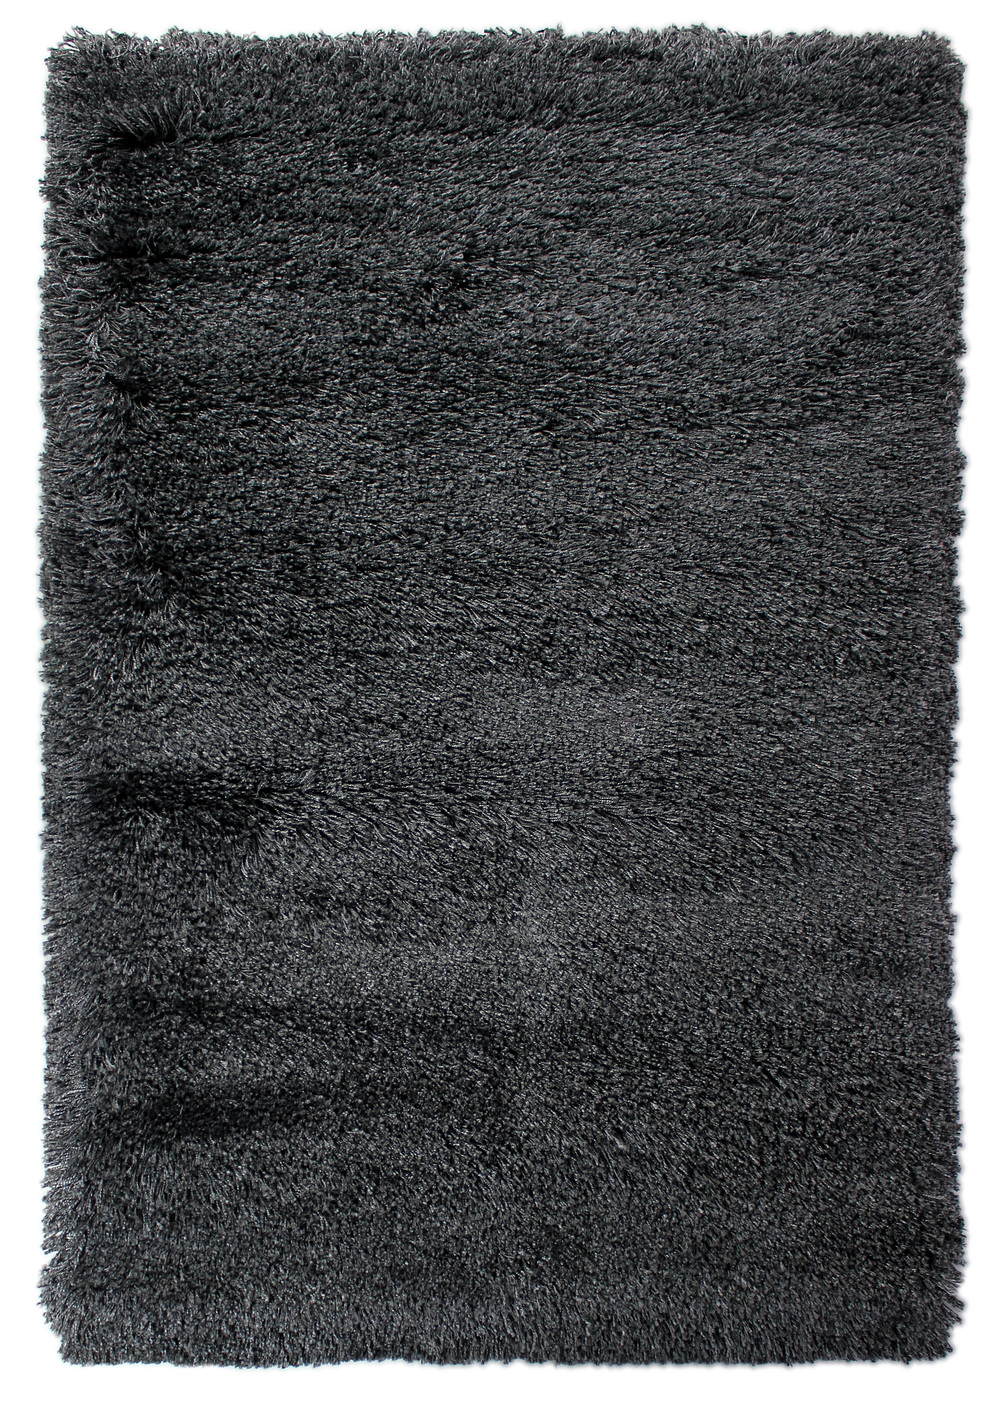 Albany Charcoal Rugs Buy Charcoal Rugs Online From Rugs